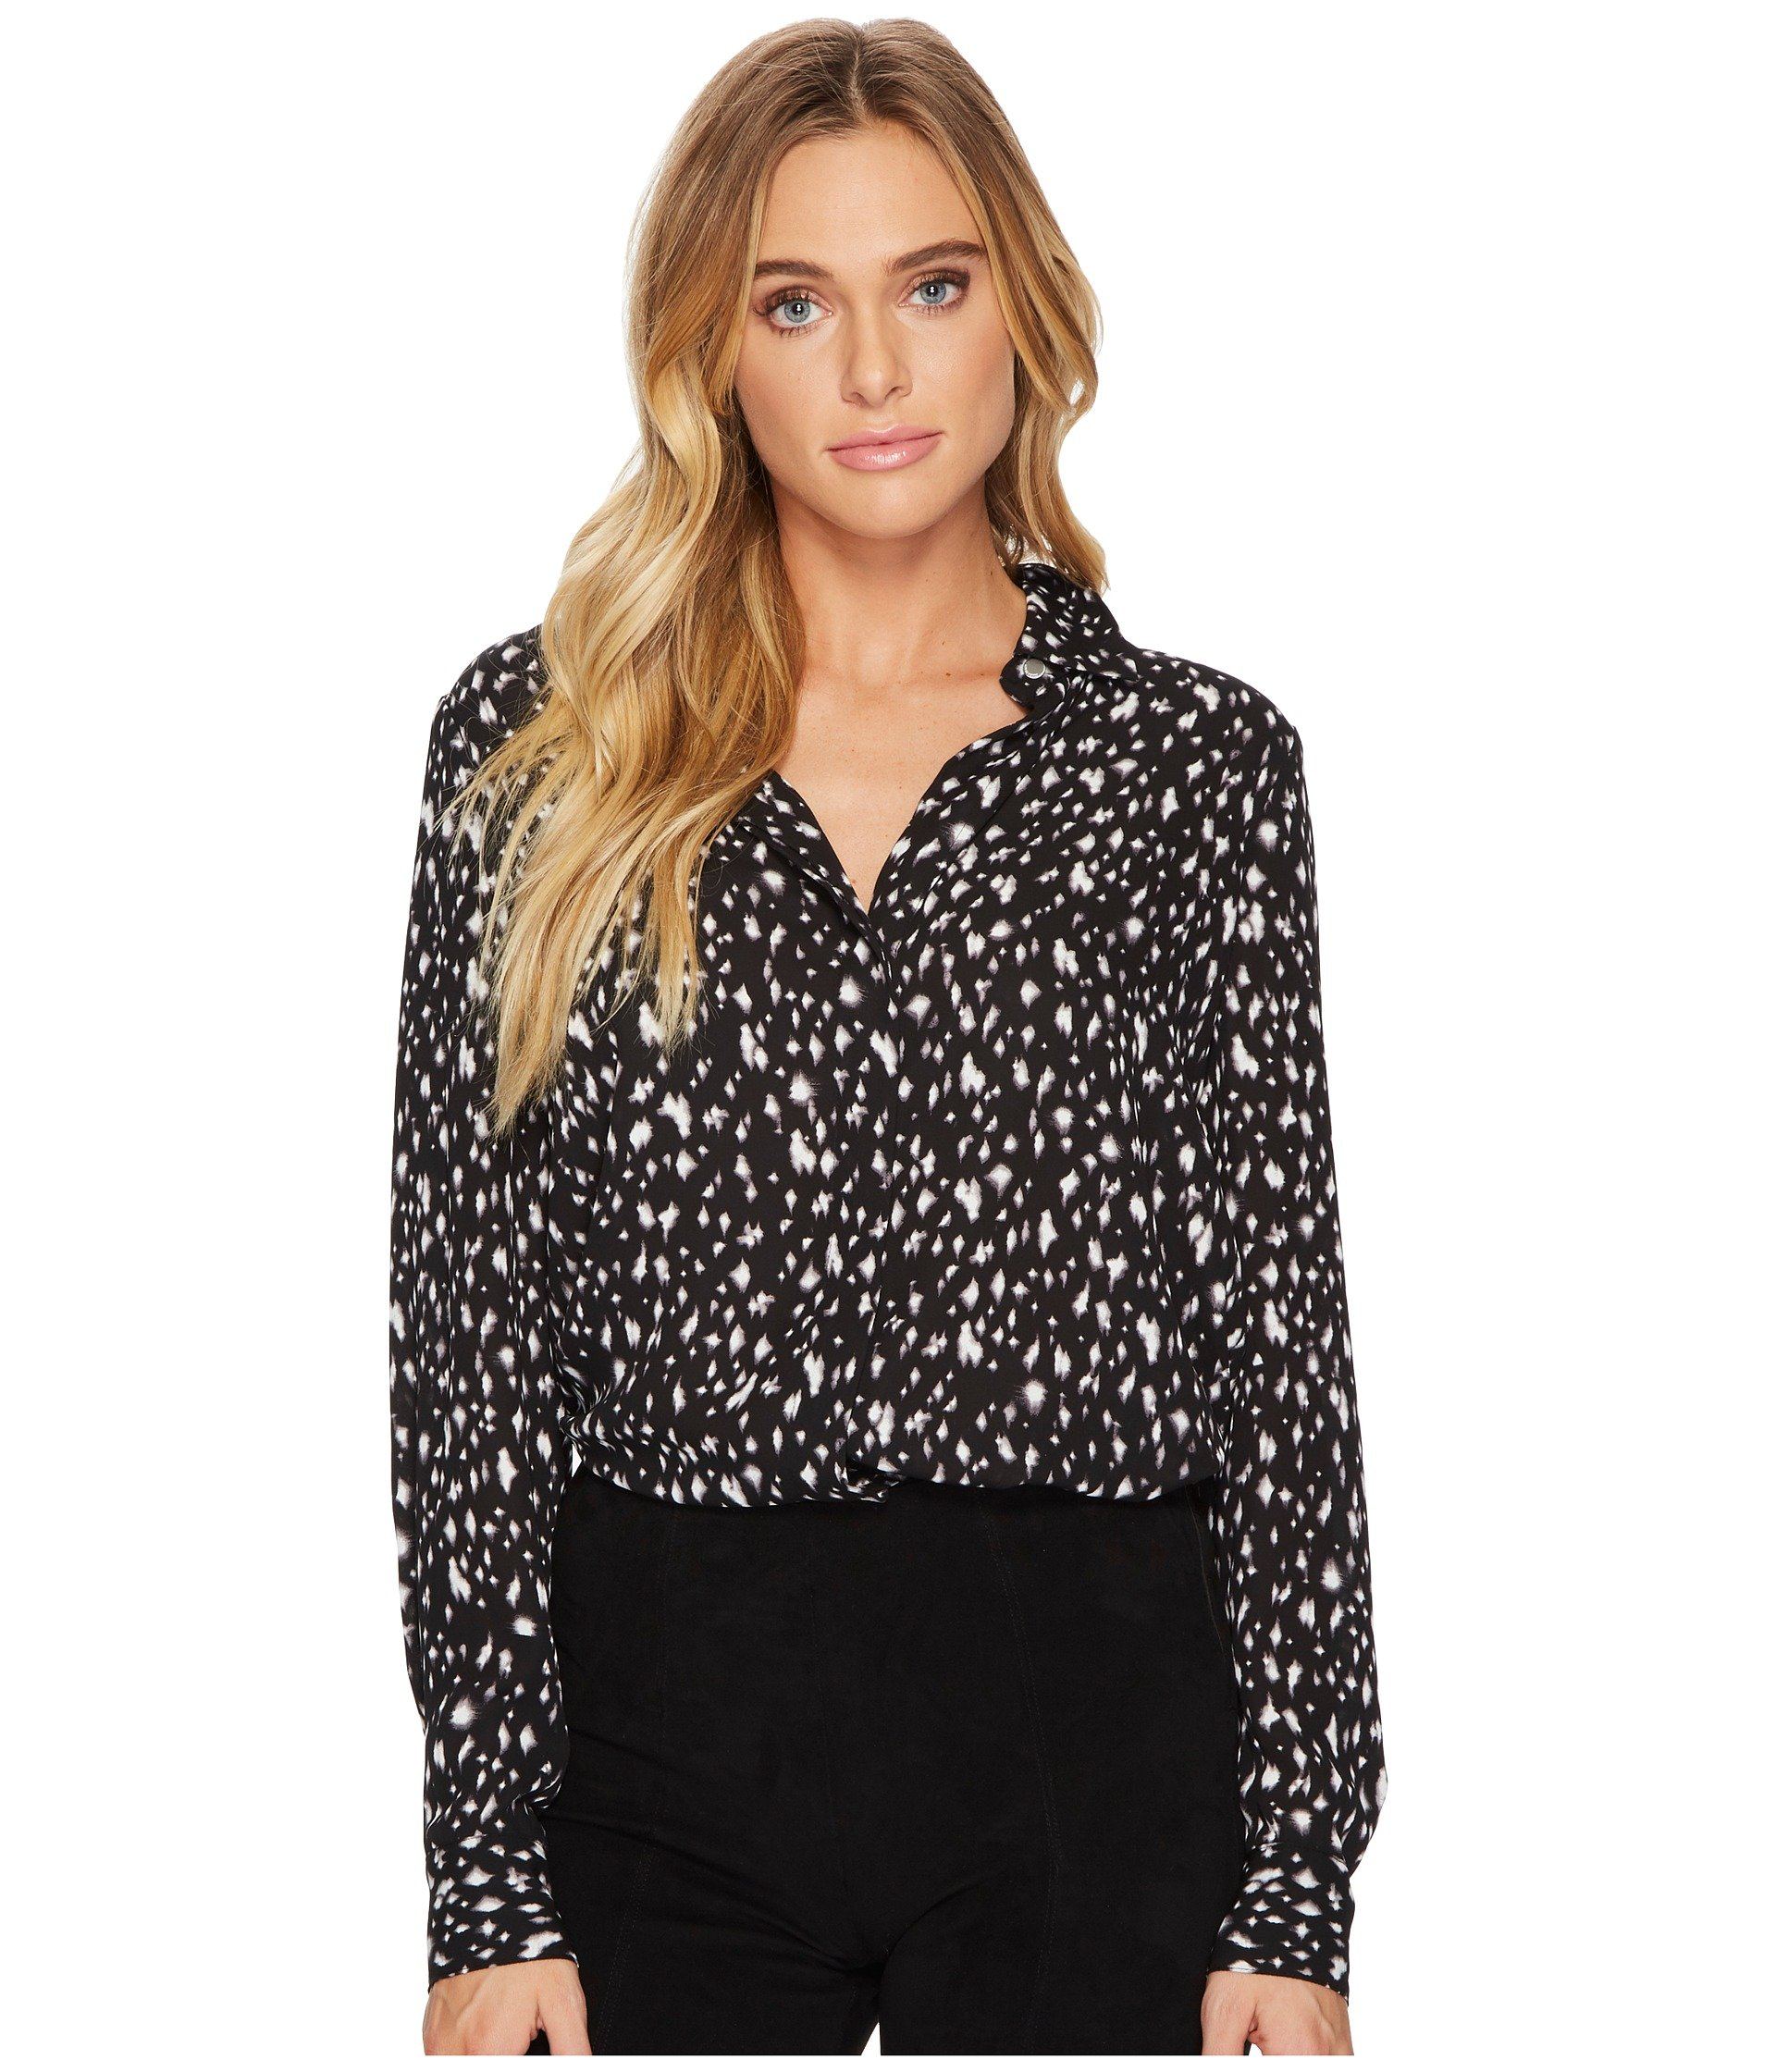 ELLEN TRACY Boyfriend Shirt, Starry Night